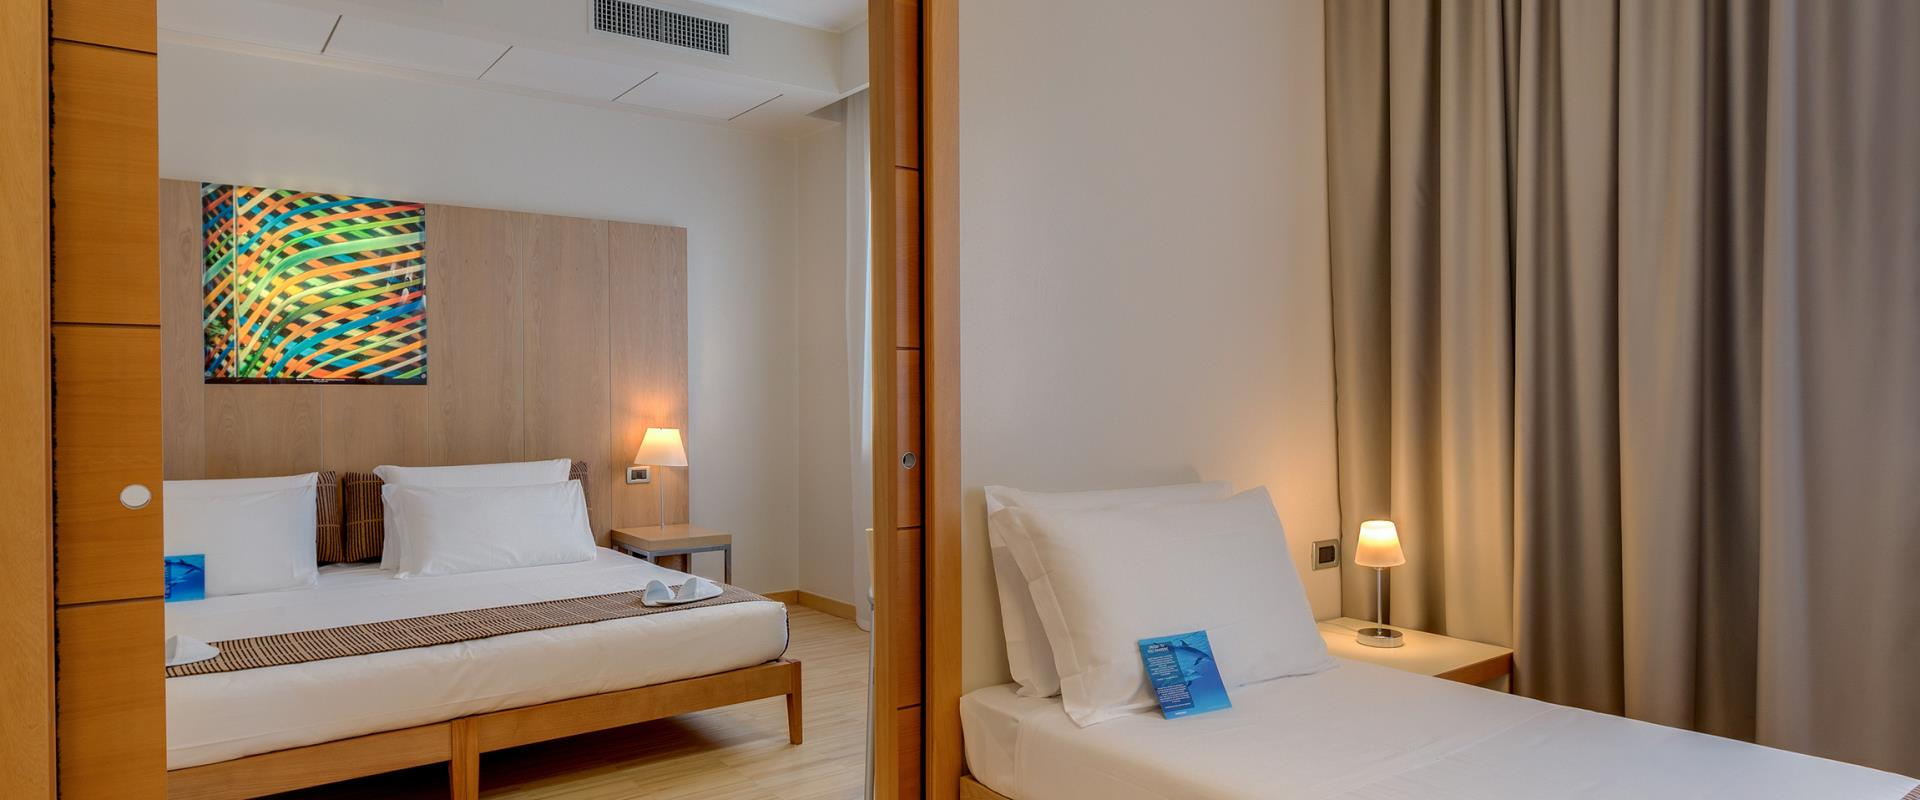 If you are travelling with your family or in a group, choose our spacious Family rooms and visit Venice in an easy way with BW Plus 4 star Hotel Bologna.